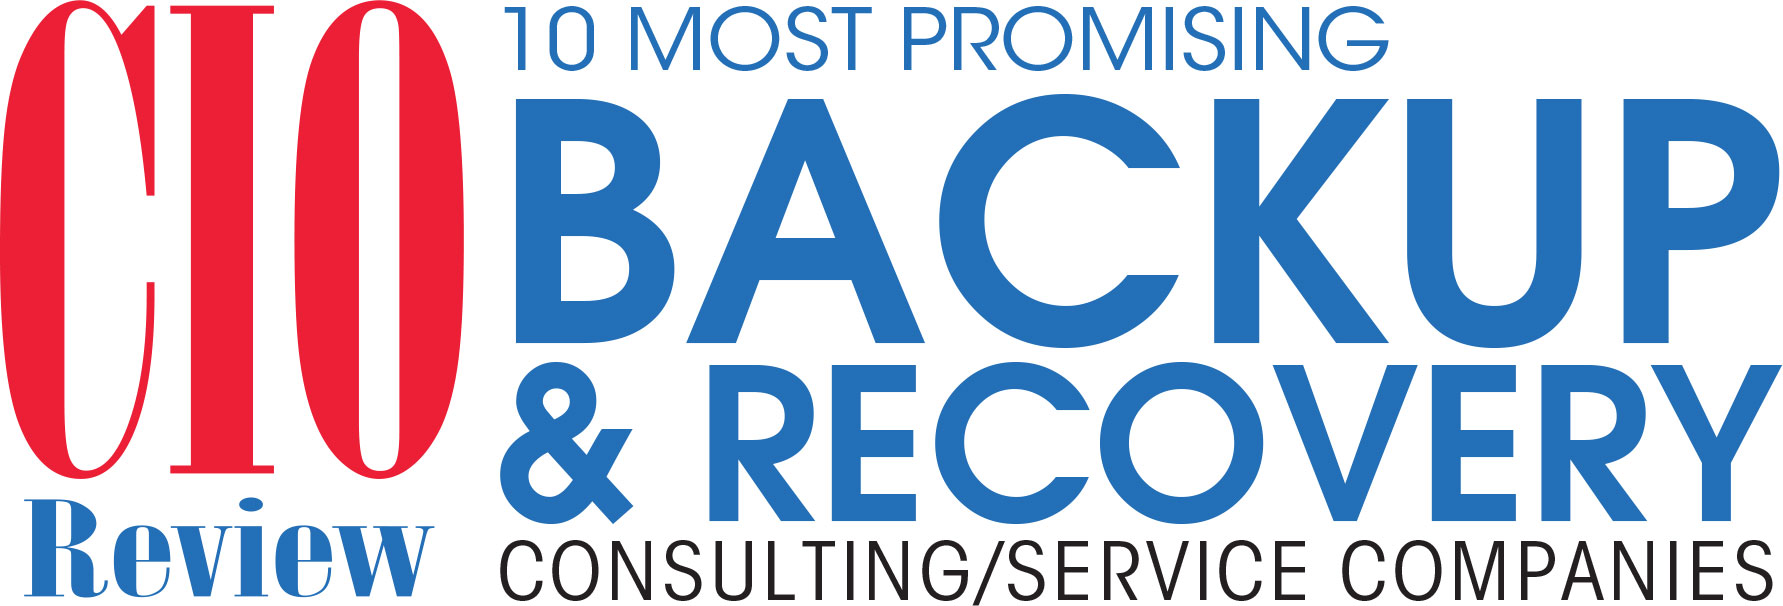 Top 10 Backup and Recovery Consulting/Service Companies - 2019